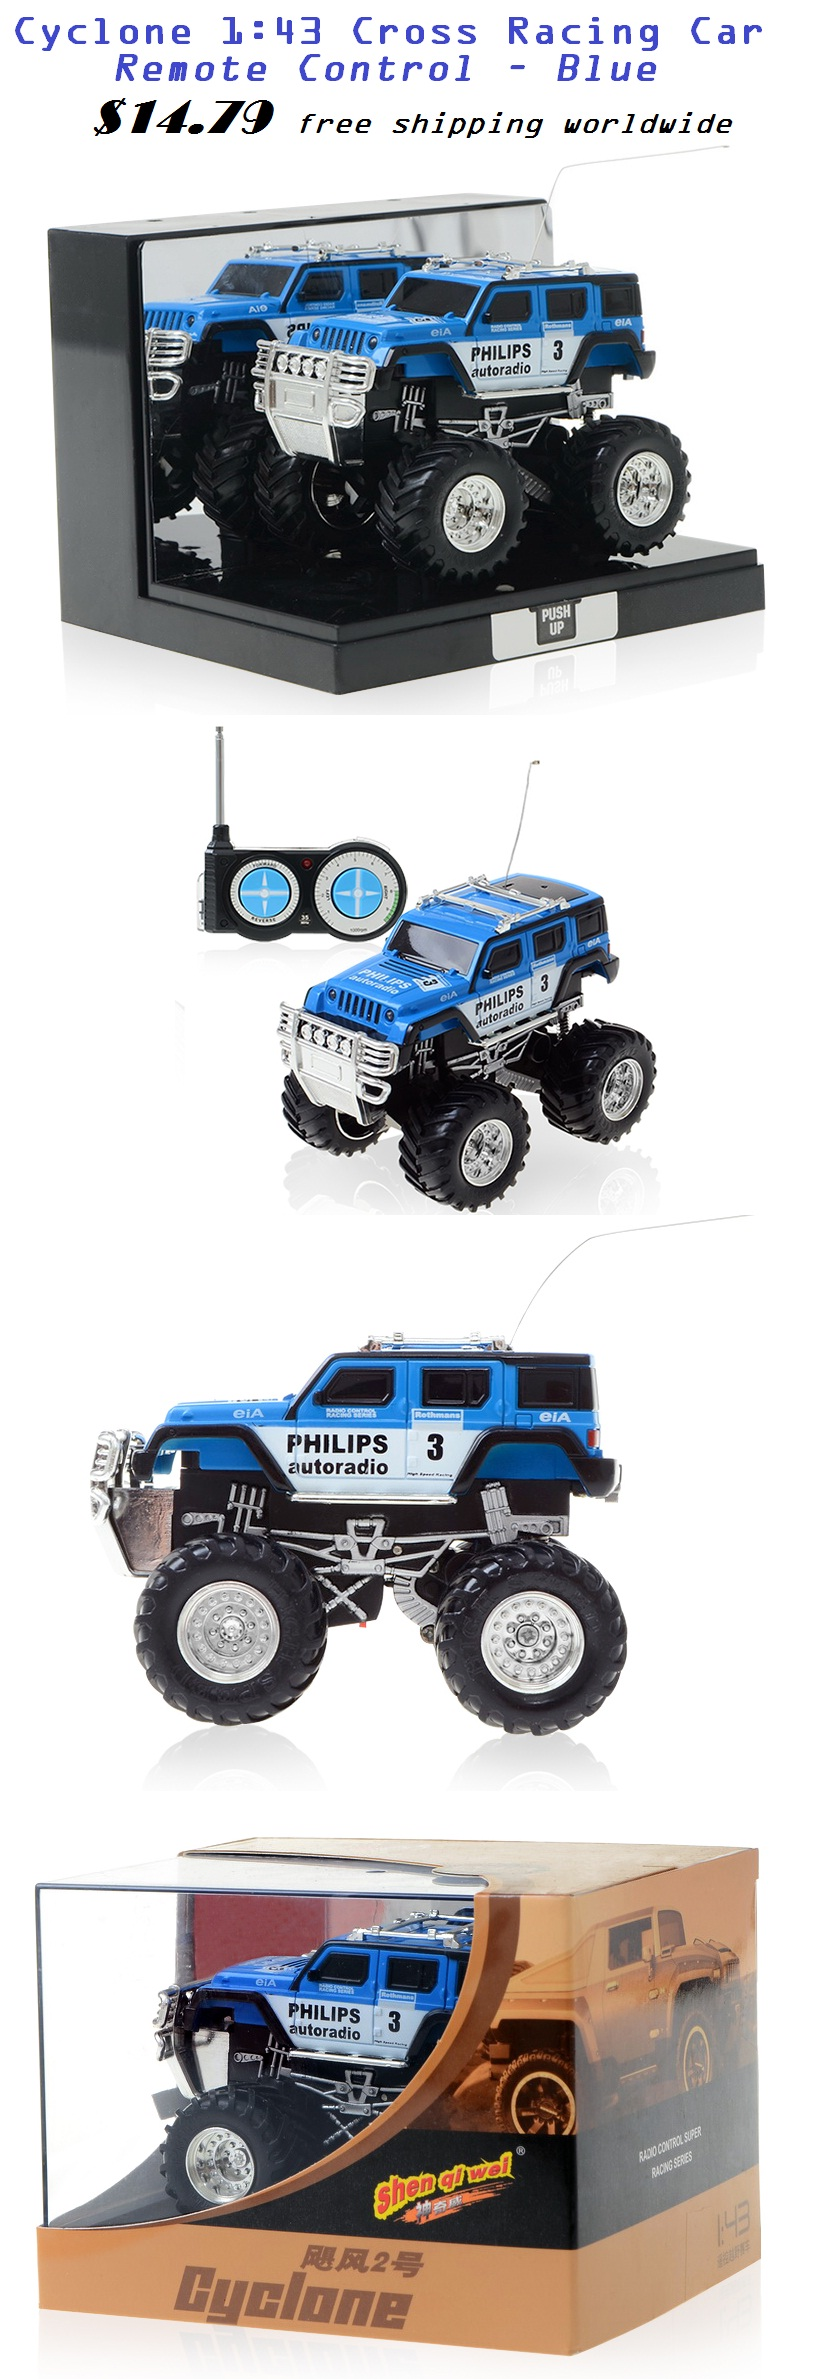 hummer offroad car remote control toy